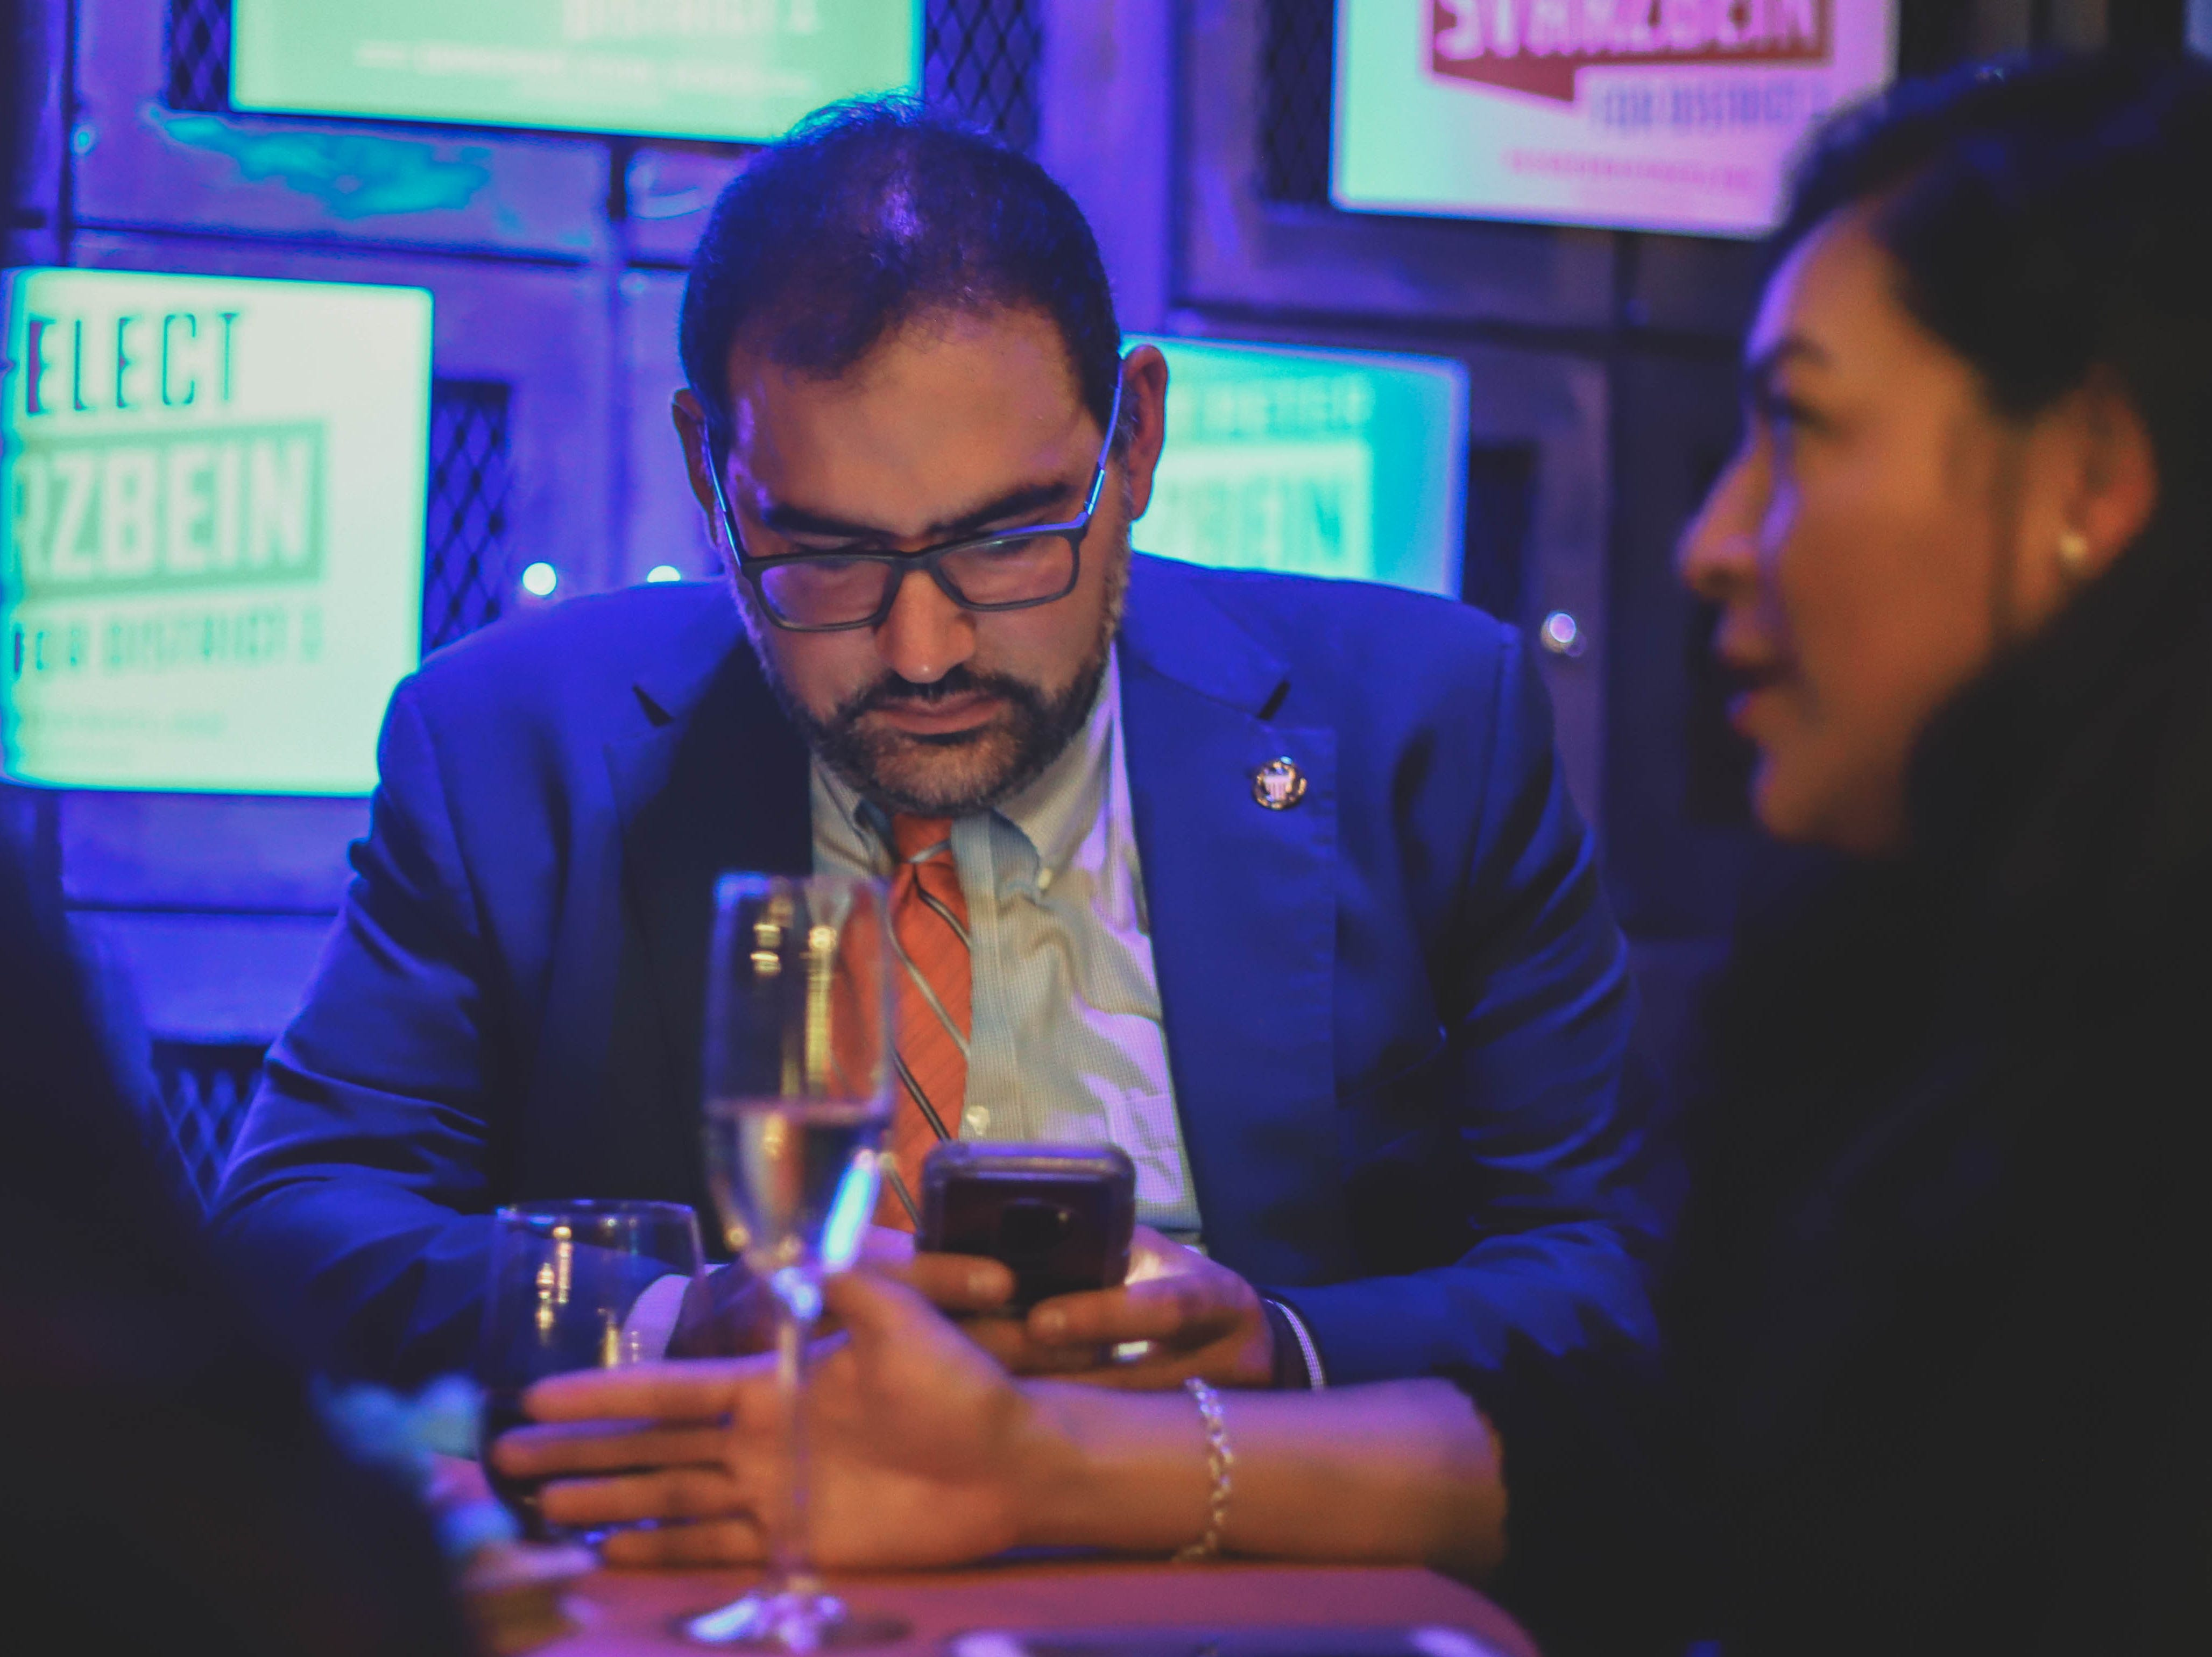 District 1 city Rep. Peter Svarzbein checks the status of early voting results on his phone Saturday, Dec. 15, 2018, at Holy Grail.